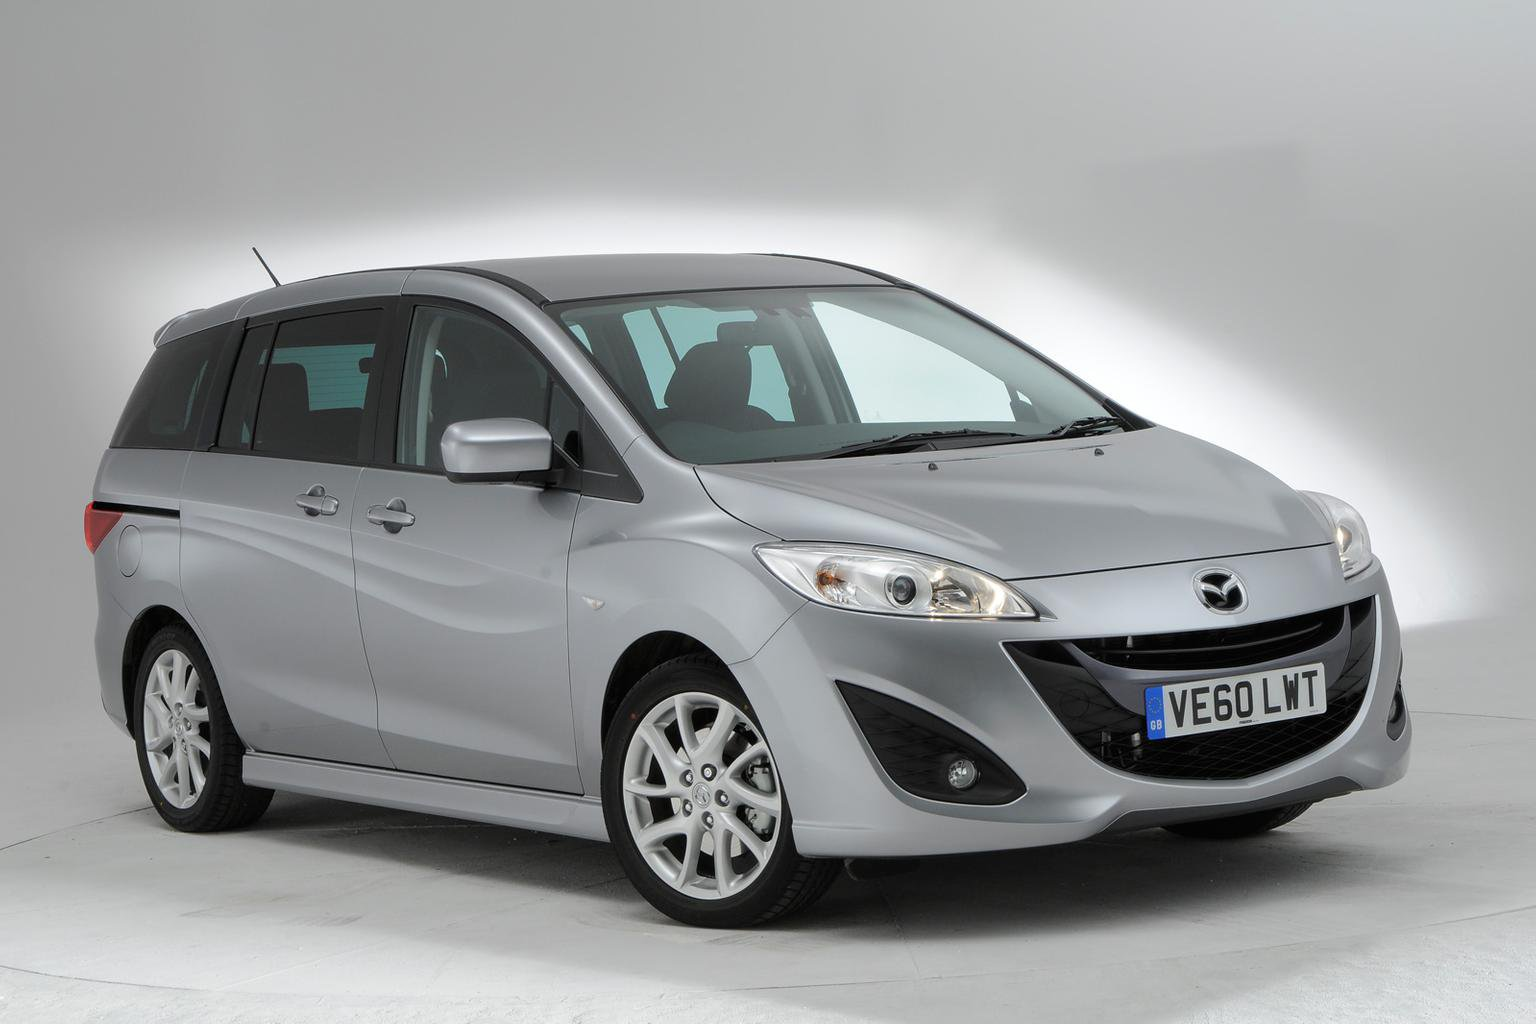 Mazda 5 won't be replaced - save thousands on final cars